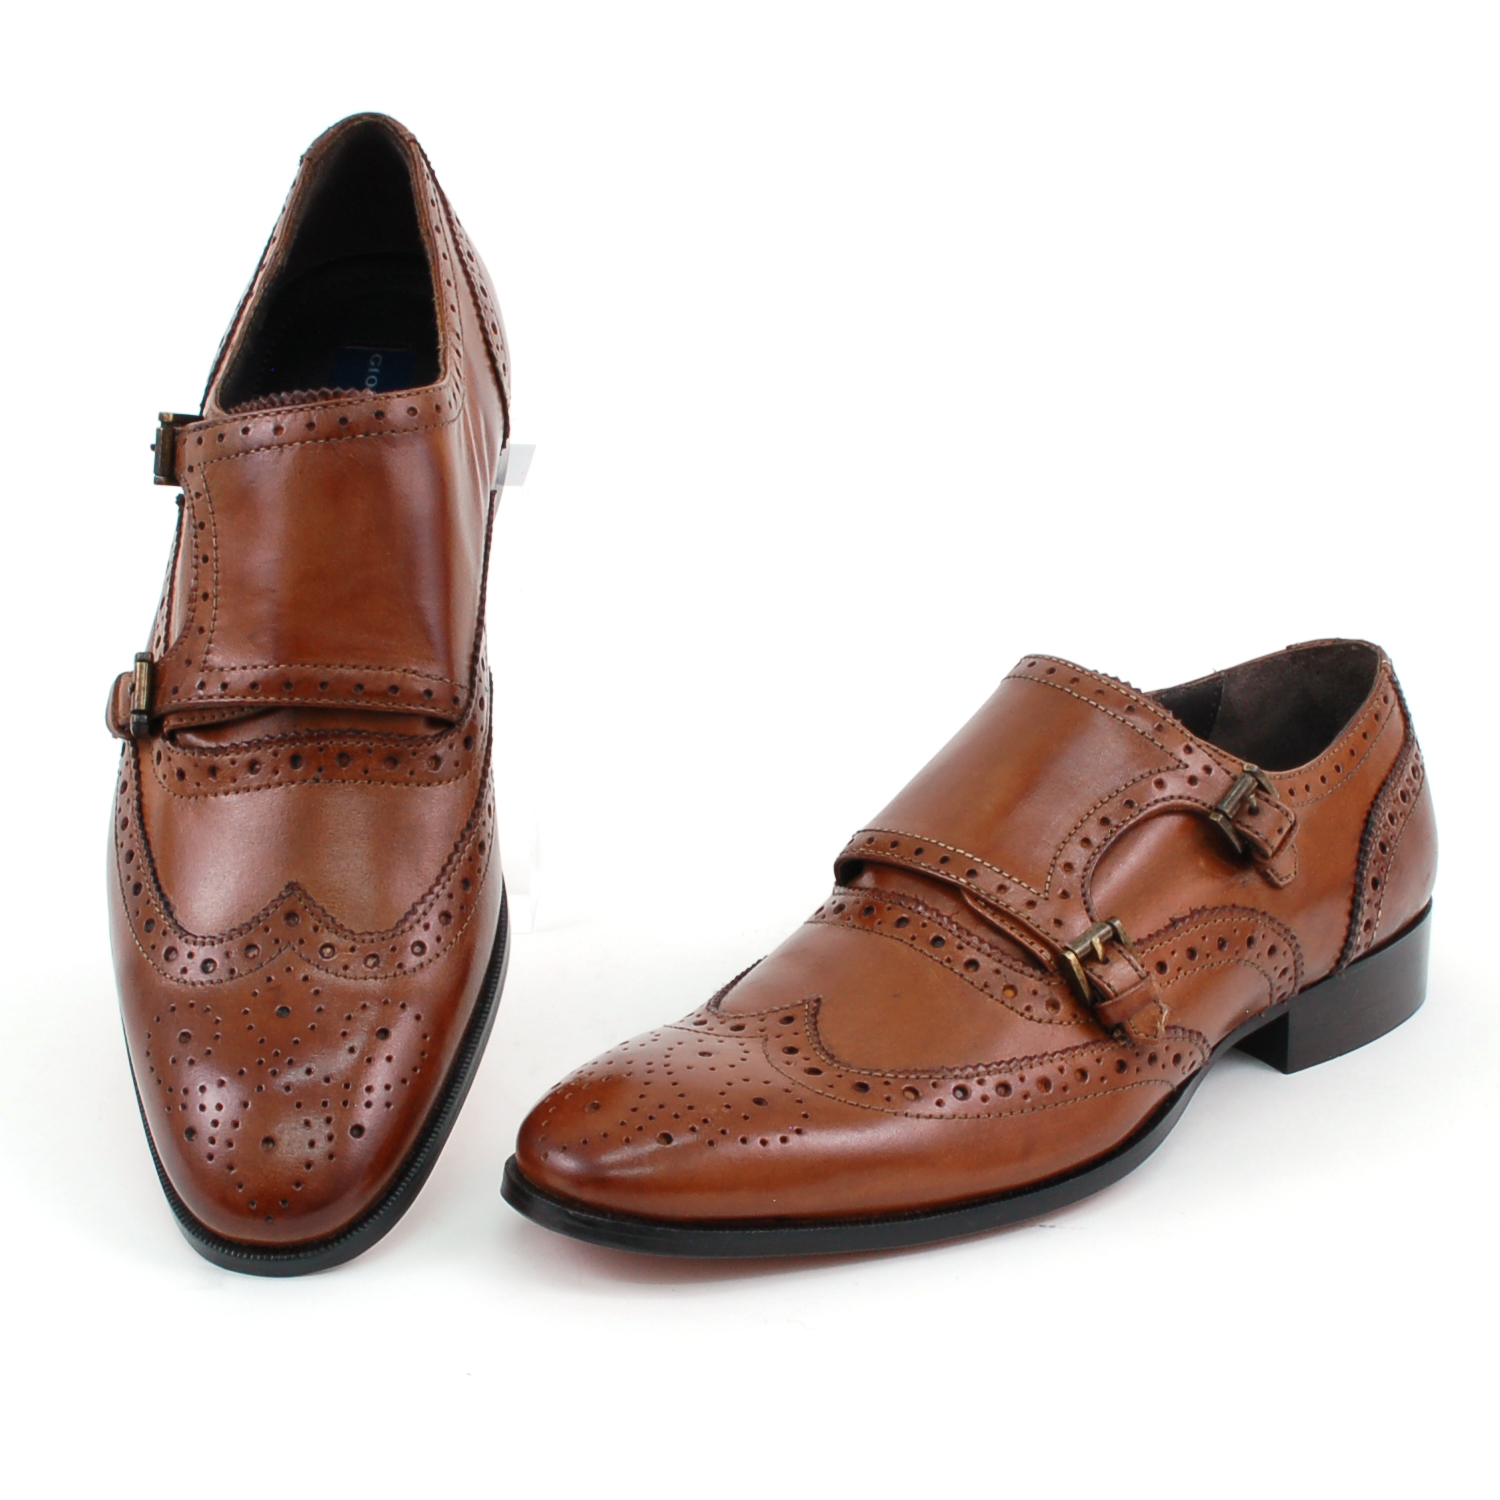 Giorgio Brutini Double Monk Strap Loafer